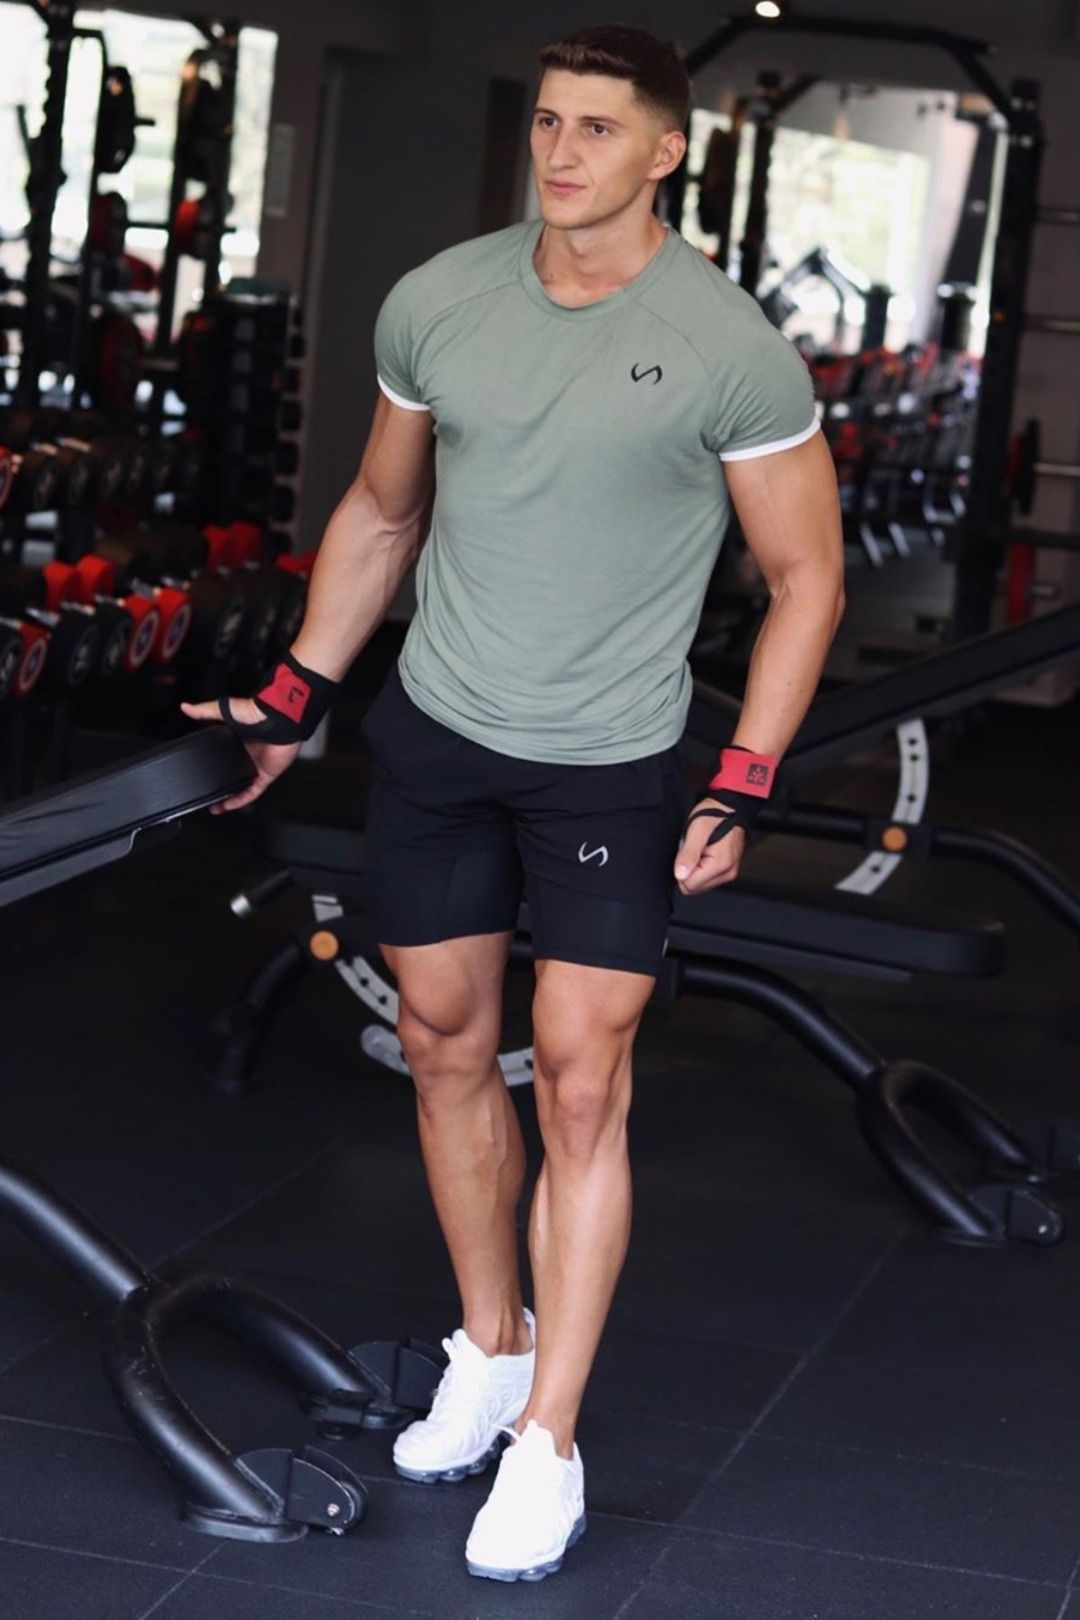 Air Flex Classic Tee In 2021 Gym Outfit Men Mens Workout Clothes Mens Fitness